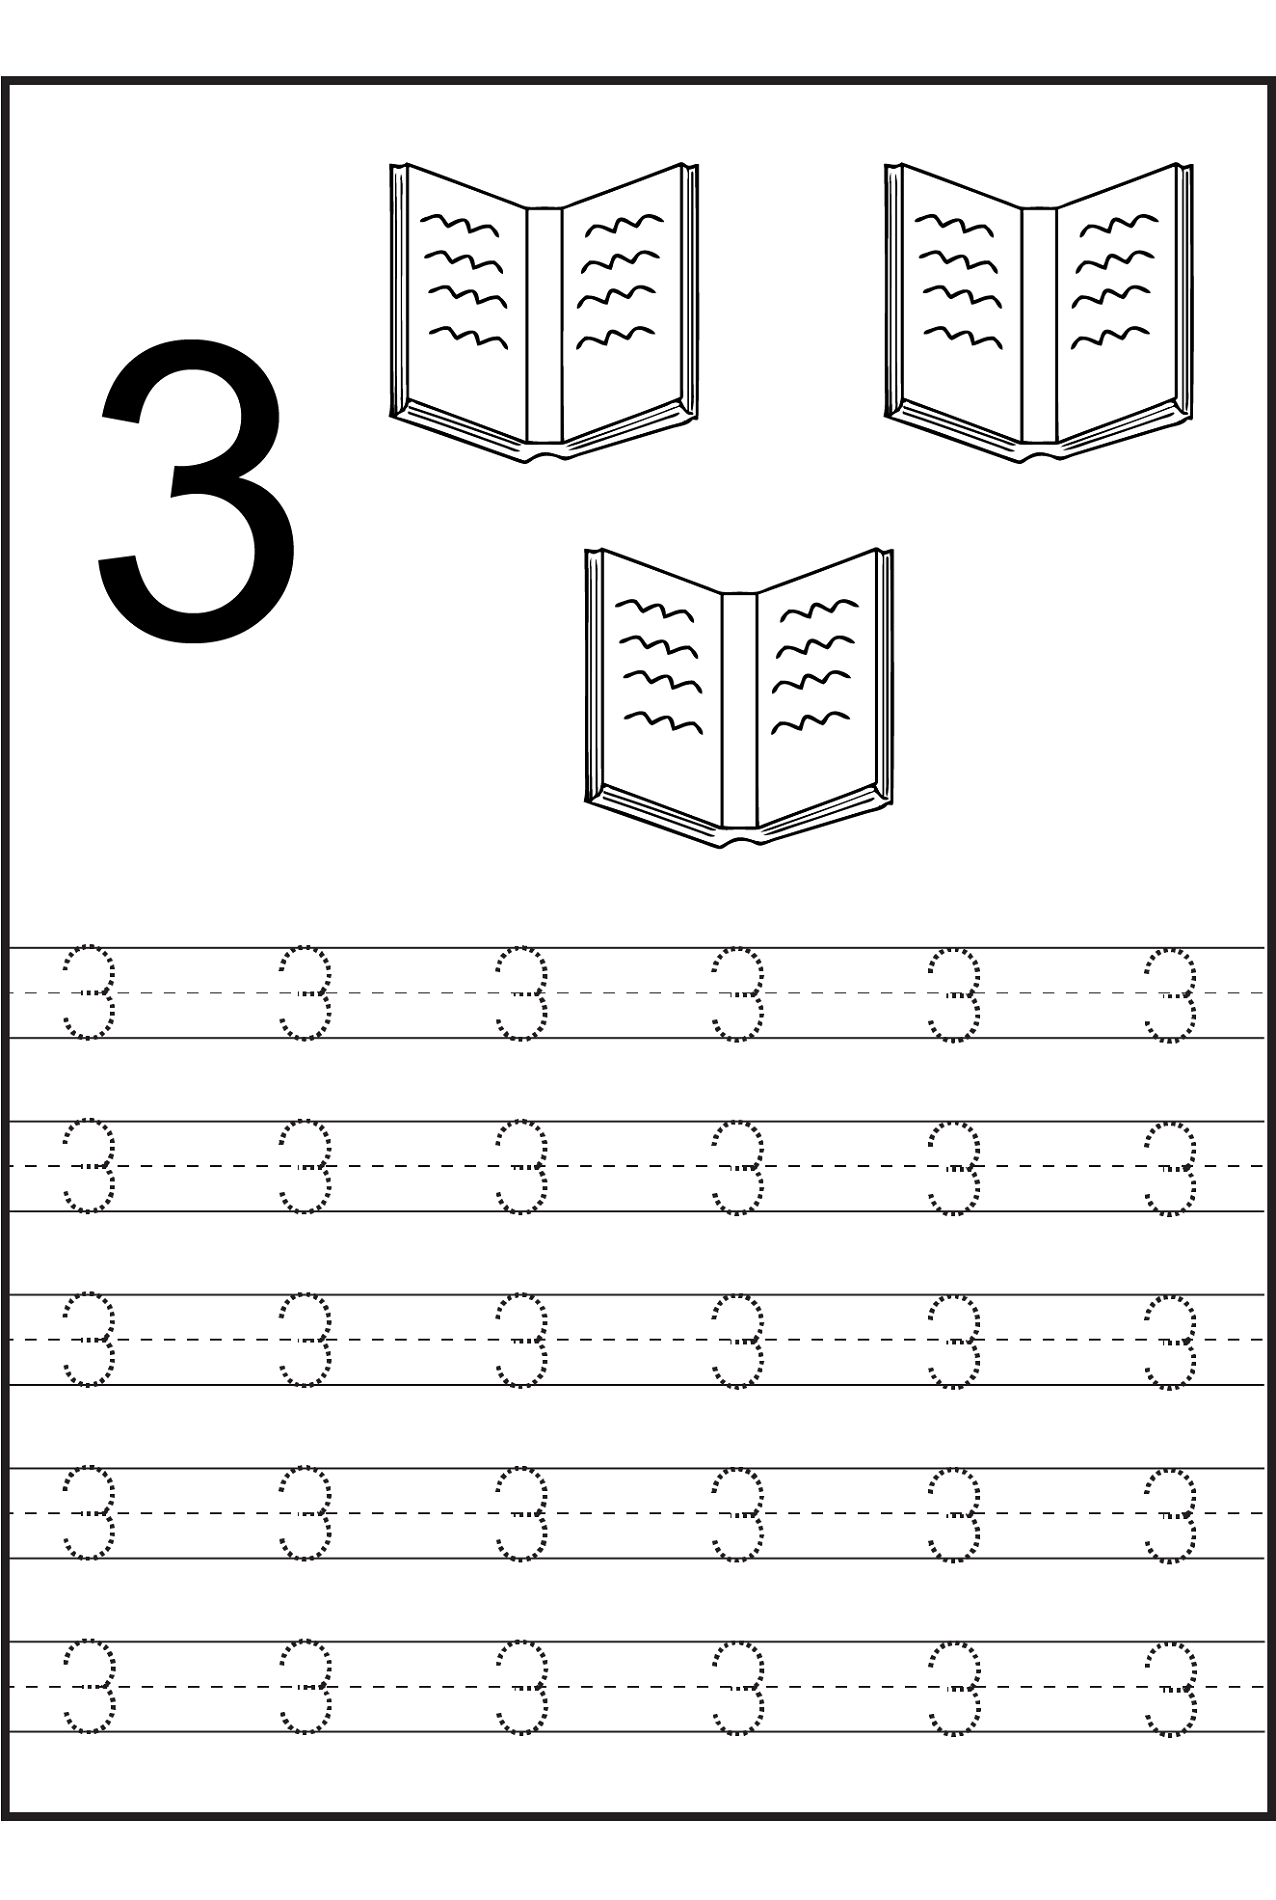 hight resolution of Worksheets For 2 Year Olds Number 3 Sarmad S Activities   Learning  worksheets